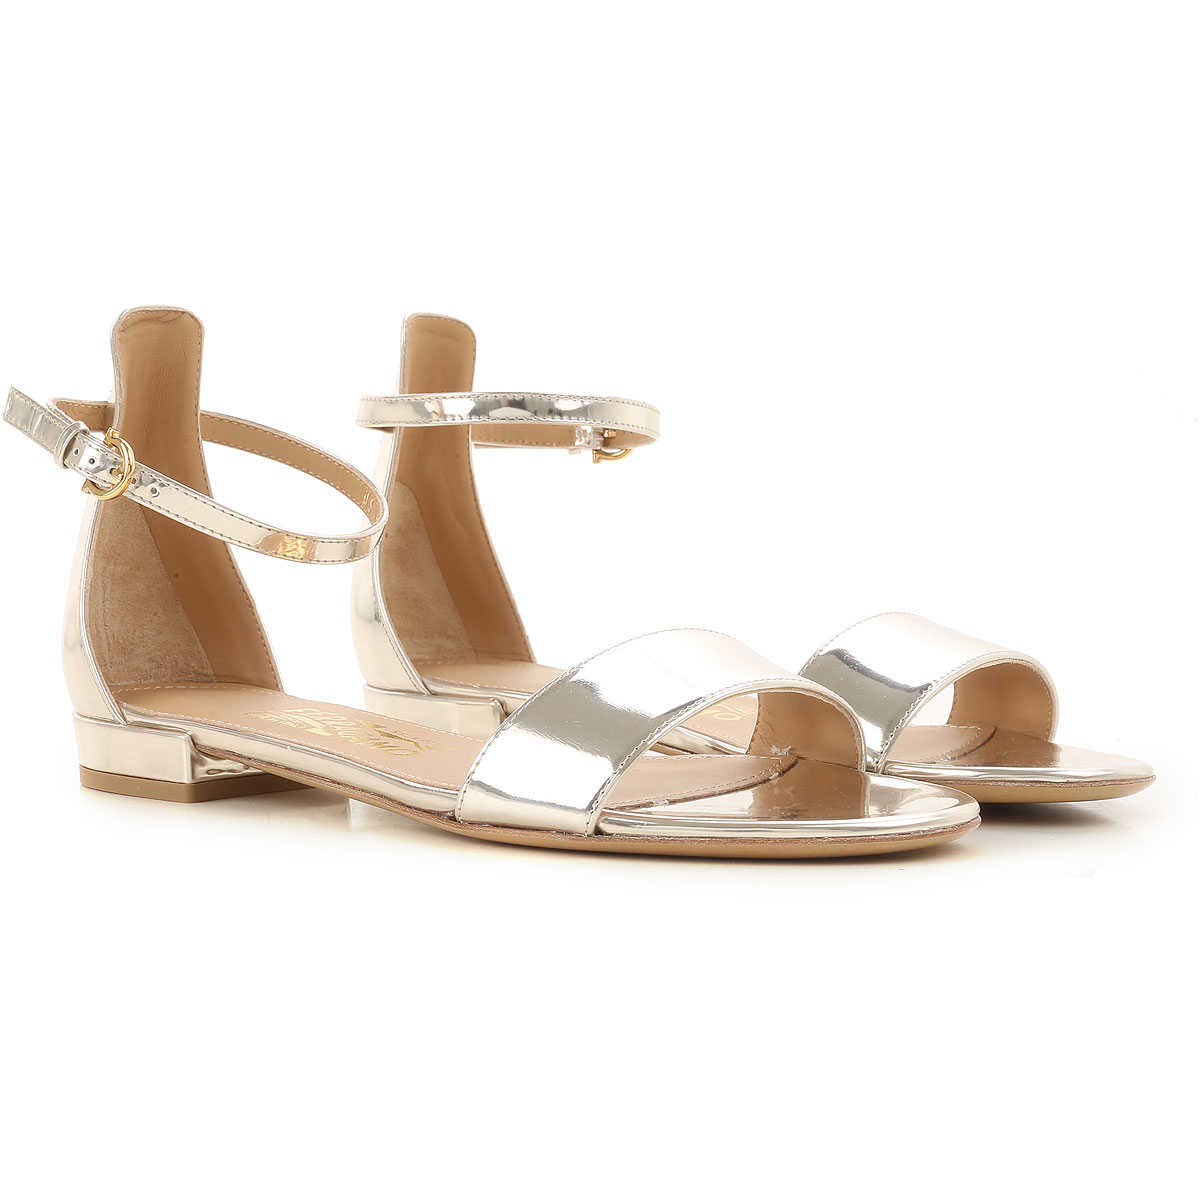 Outlet, Golden, Metallic Leather